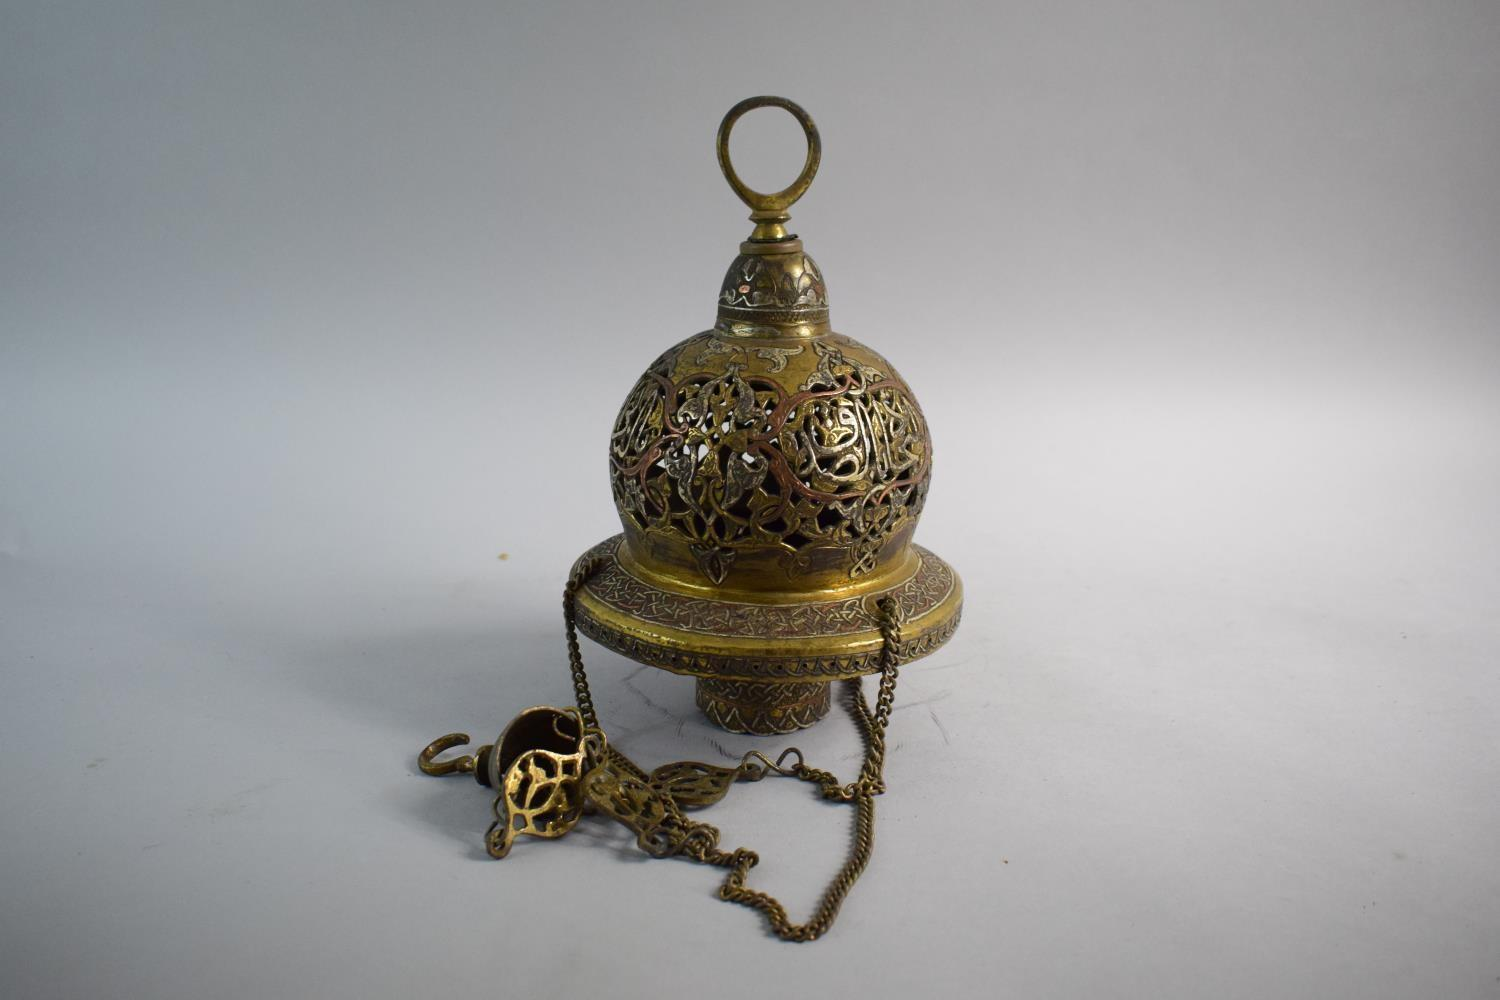 Lot 113 - An Islamic Cairo Ware Mosque Lamp with Chain Suspension